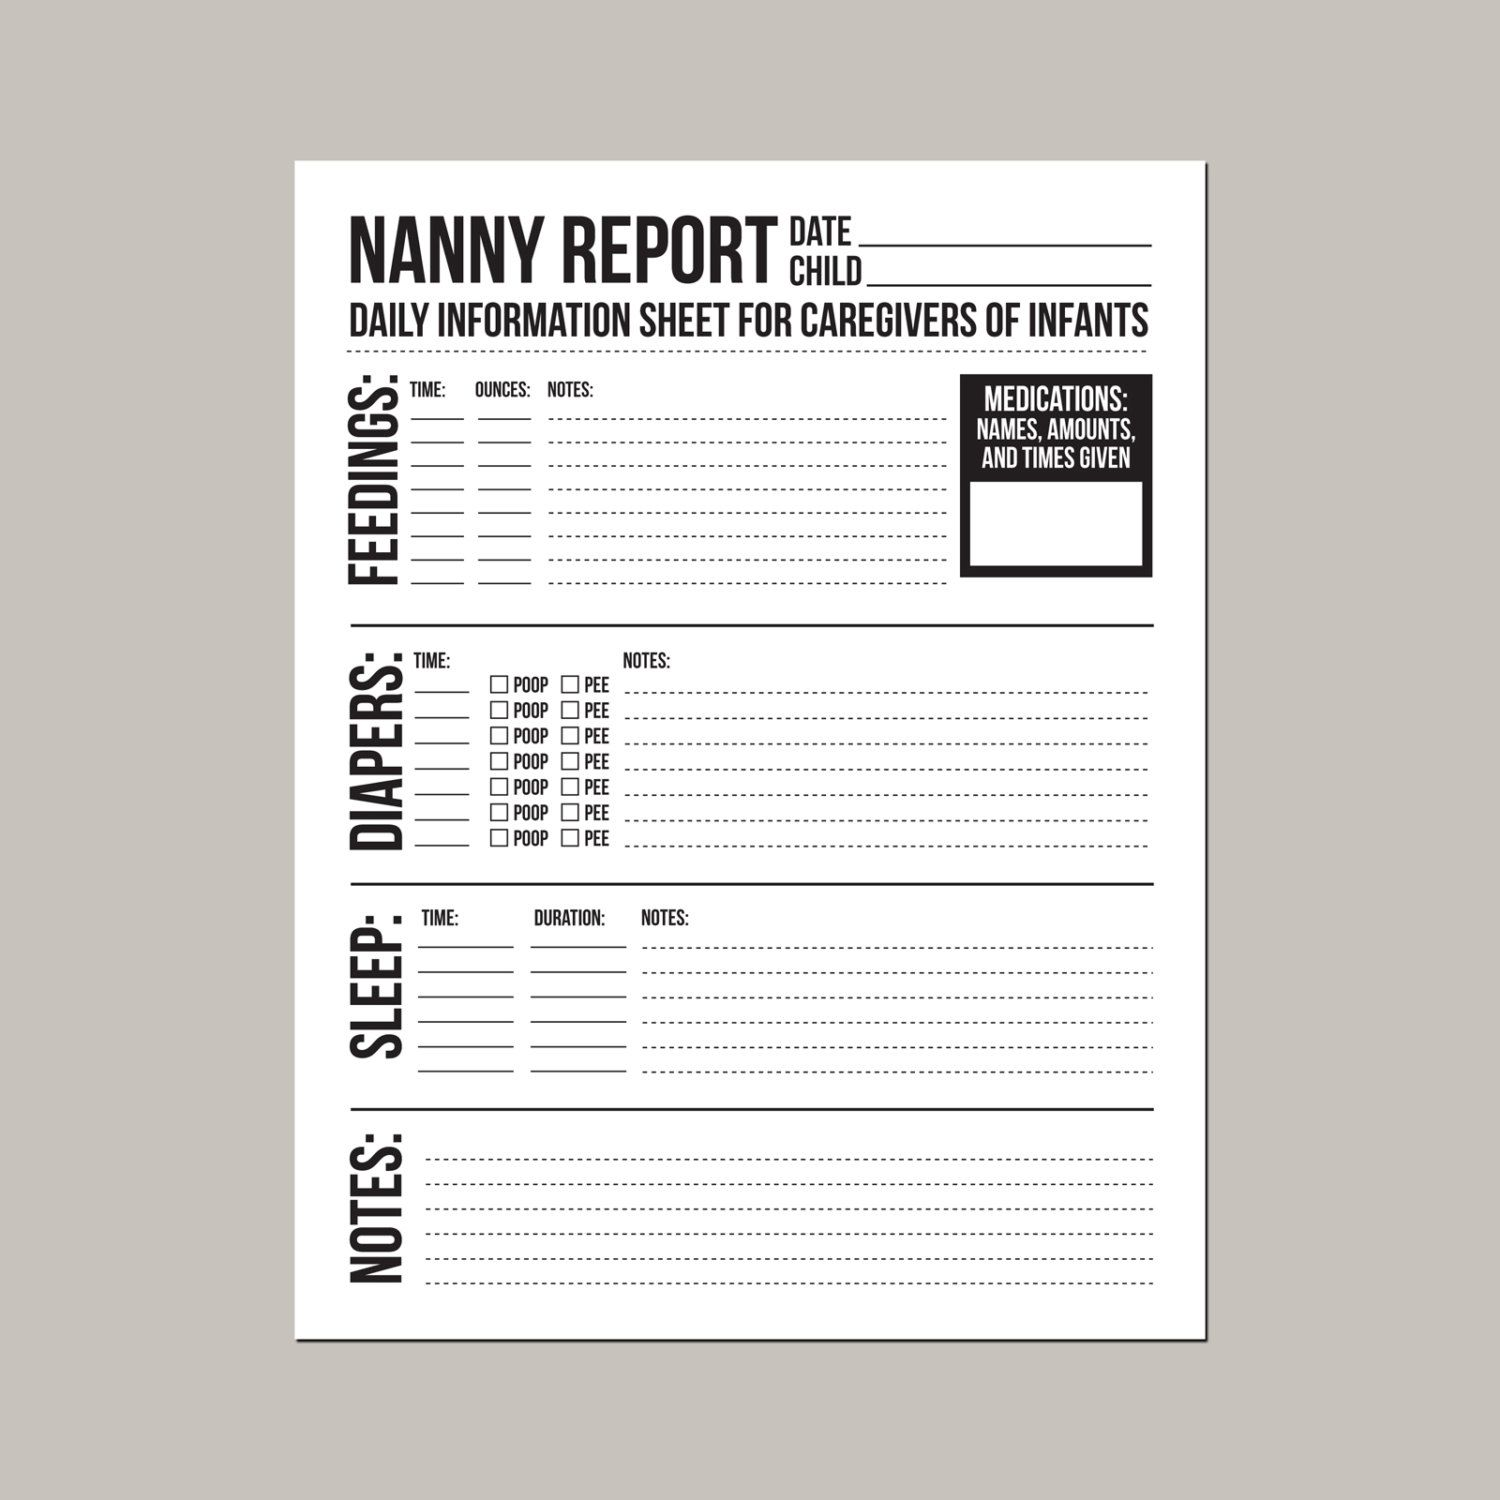 Nanny Report Daily Information Sheet For Caregivers Of Infants